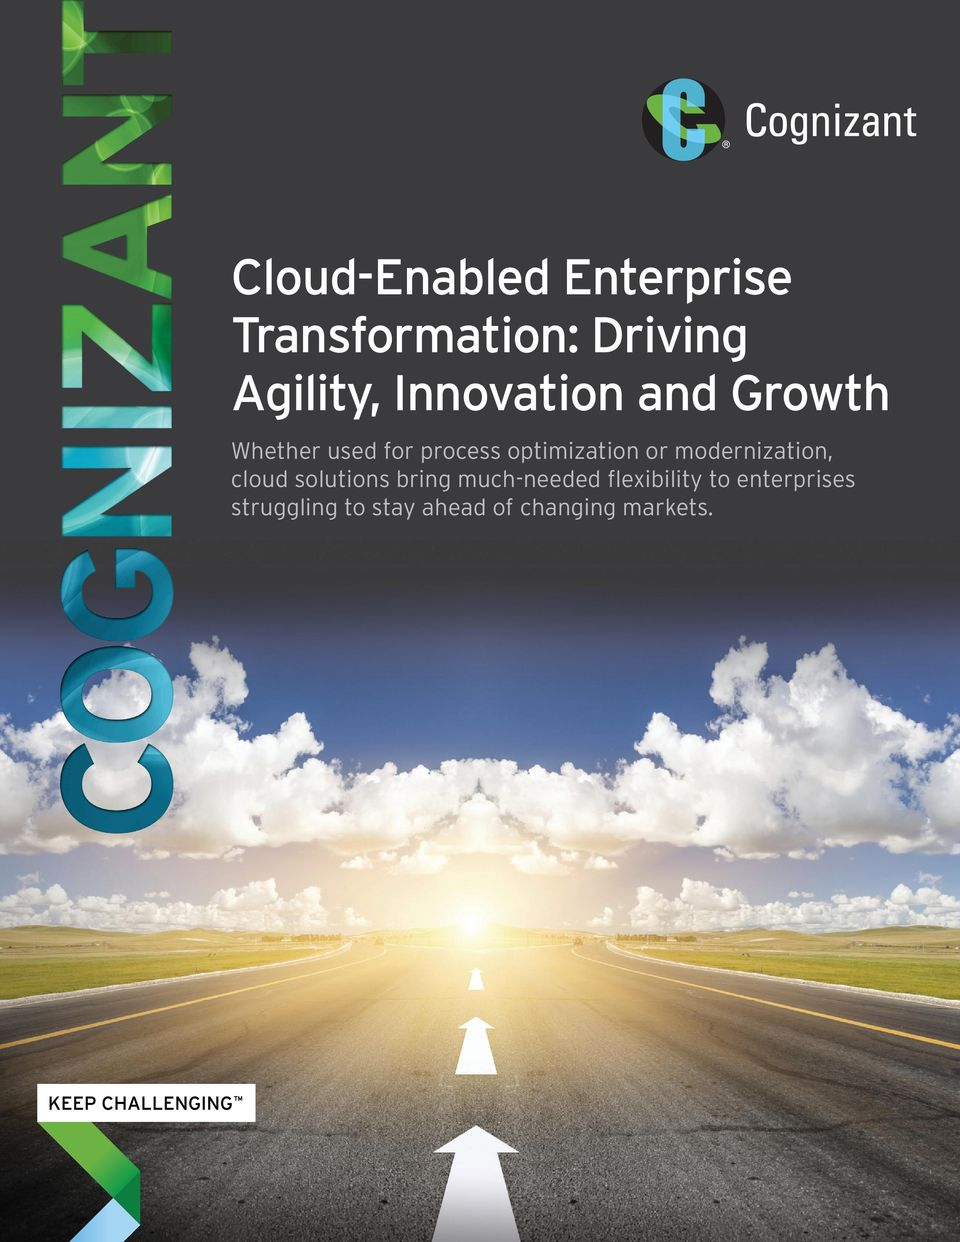 or modernization, cloud solutions bring much-needed